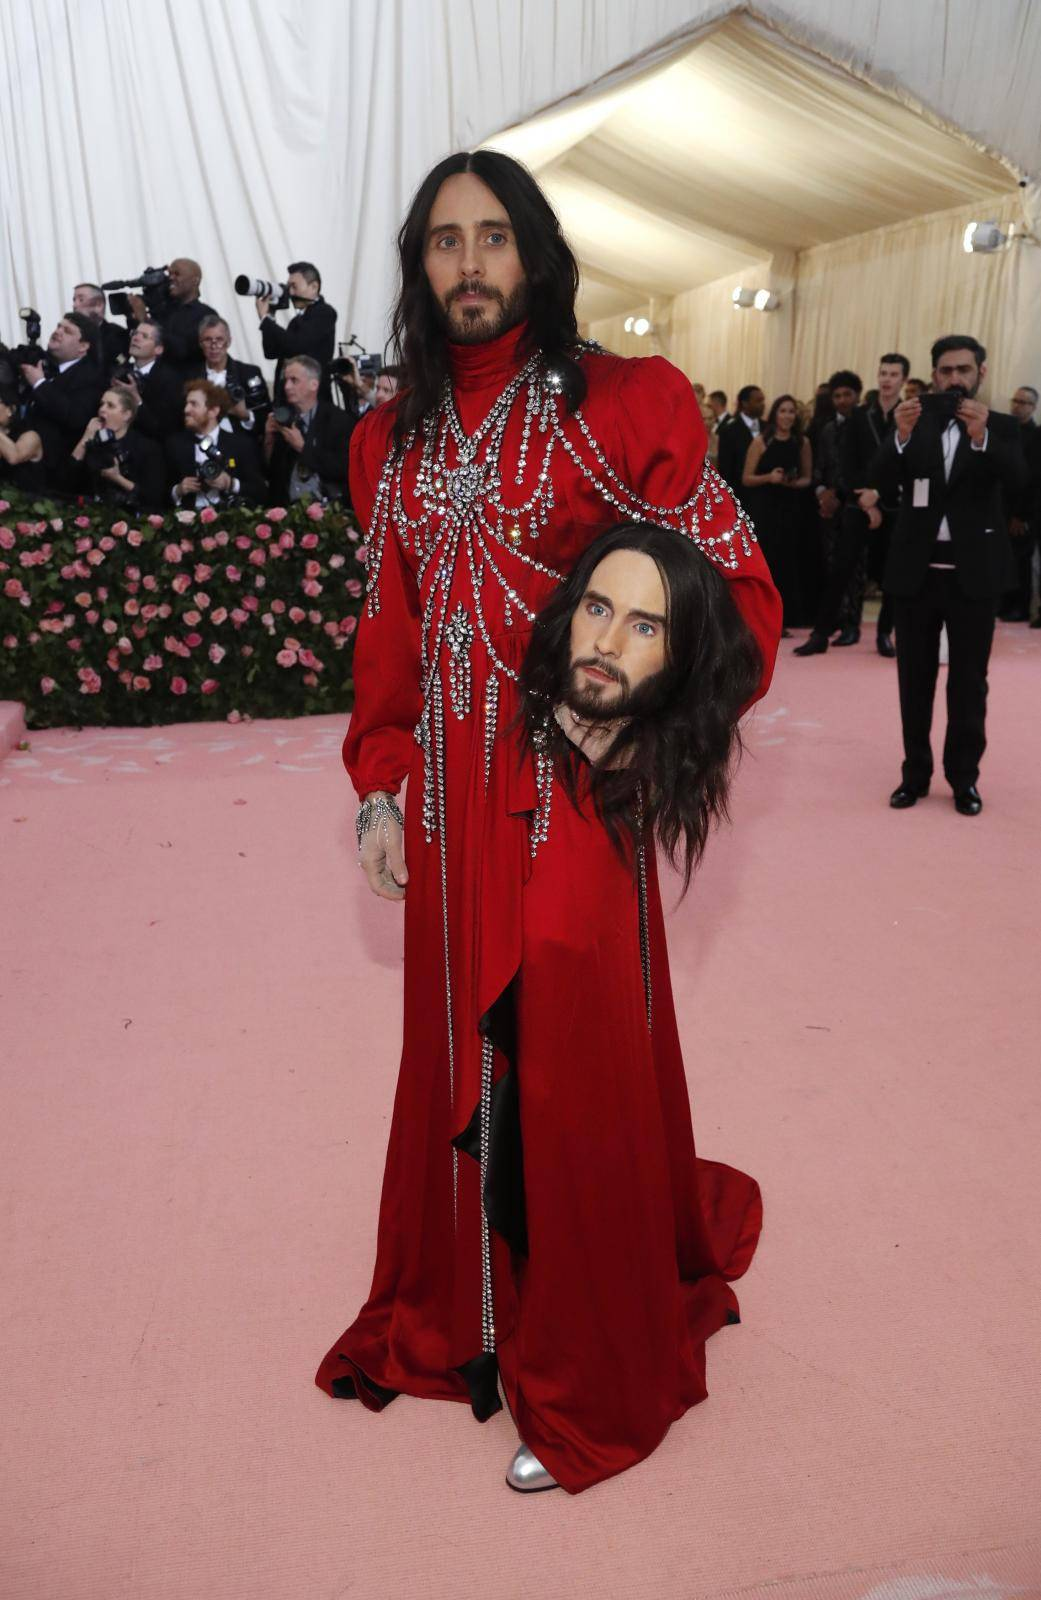 Metropolitan Museum of Art Costume Institute Gala - Met Gala - Camp: Notes on Fashion - Arrivals - New York City, U.S.